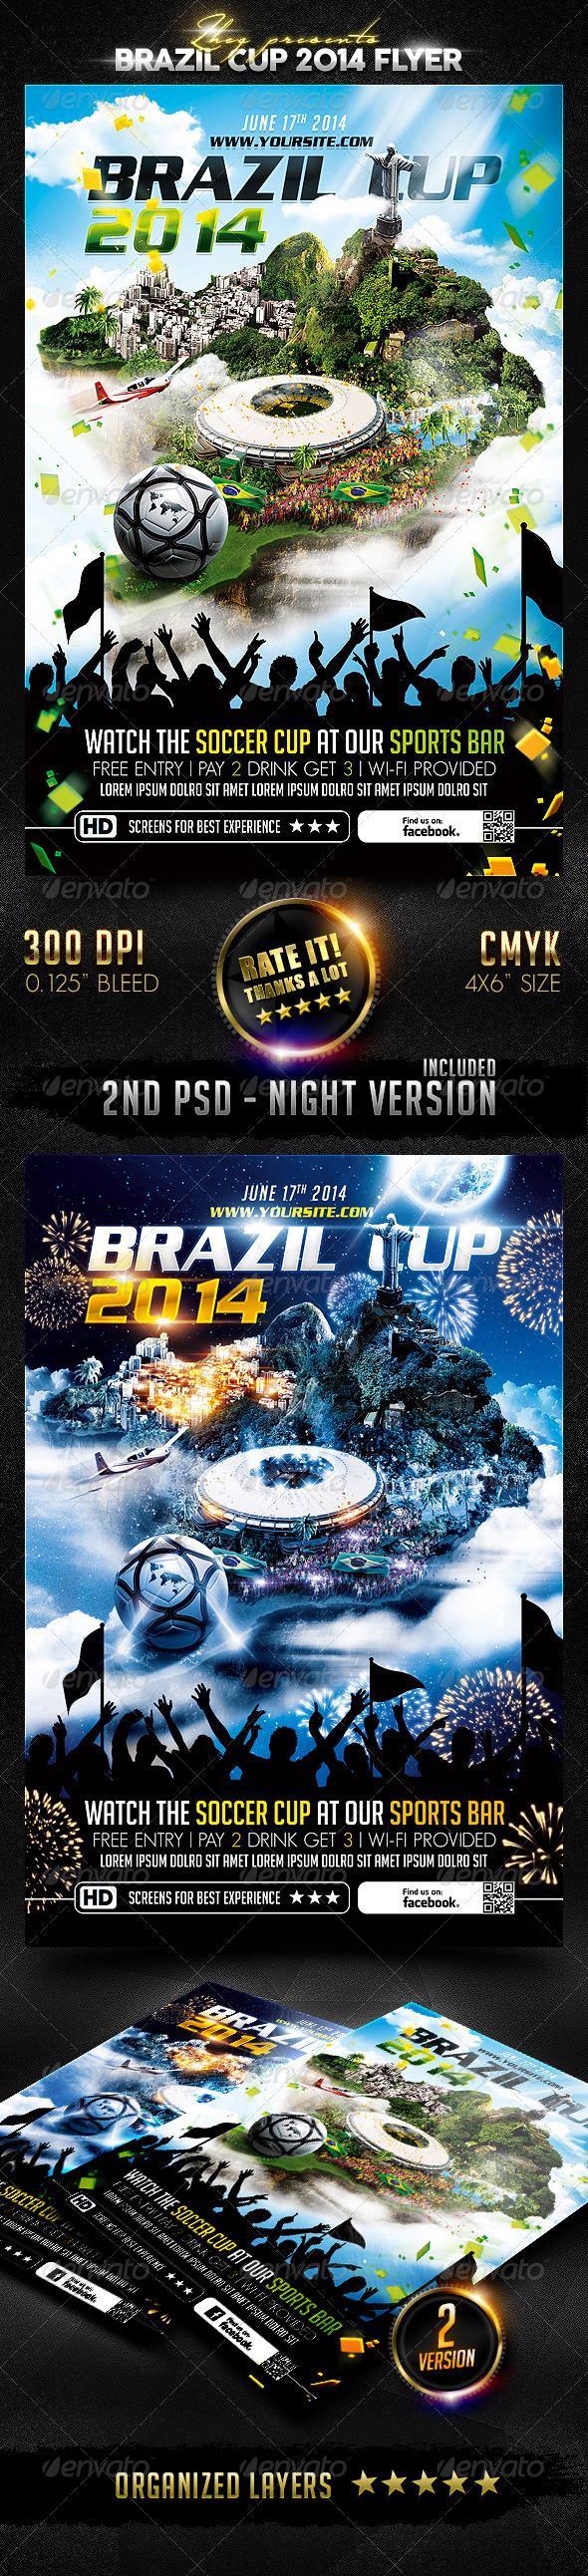 GraphicRiver Brazil Cup 2014 Flyer 7849059